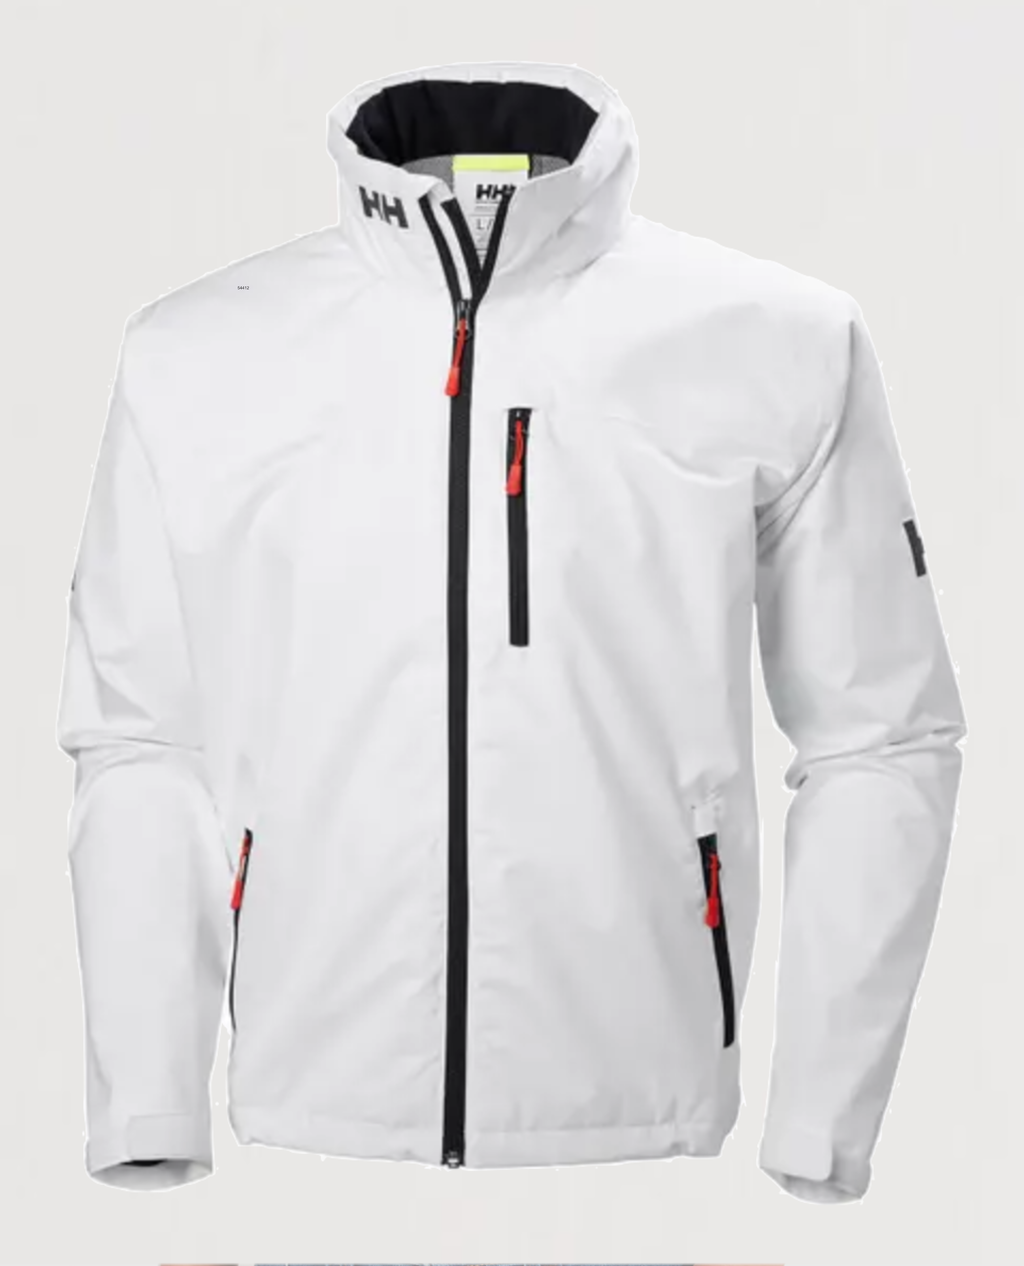 Crew Hooded Jacket - White - Island Outfitters